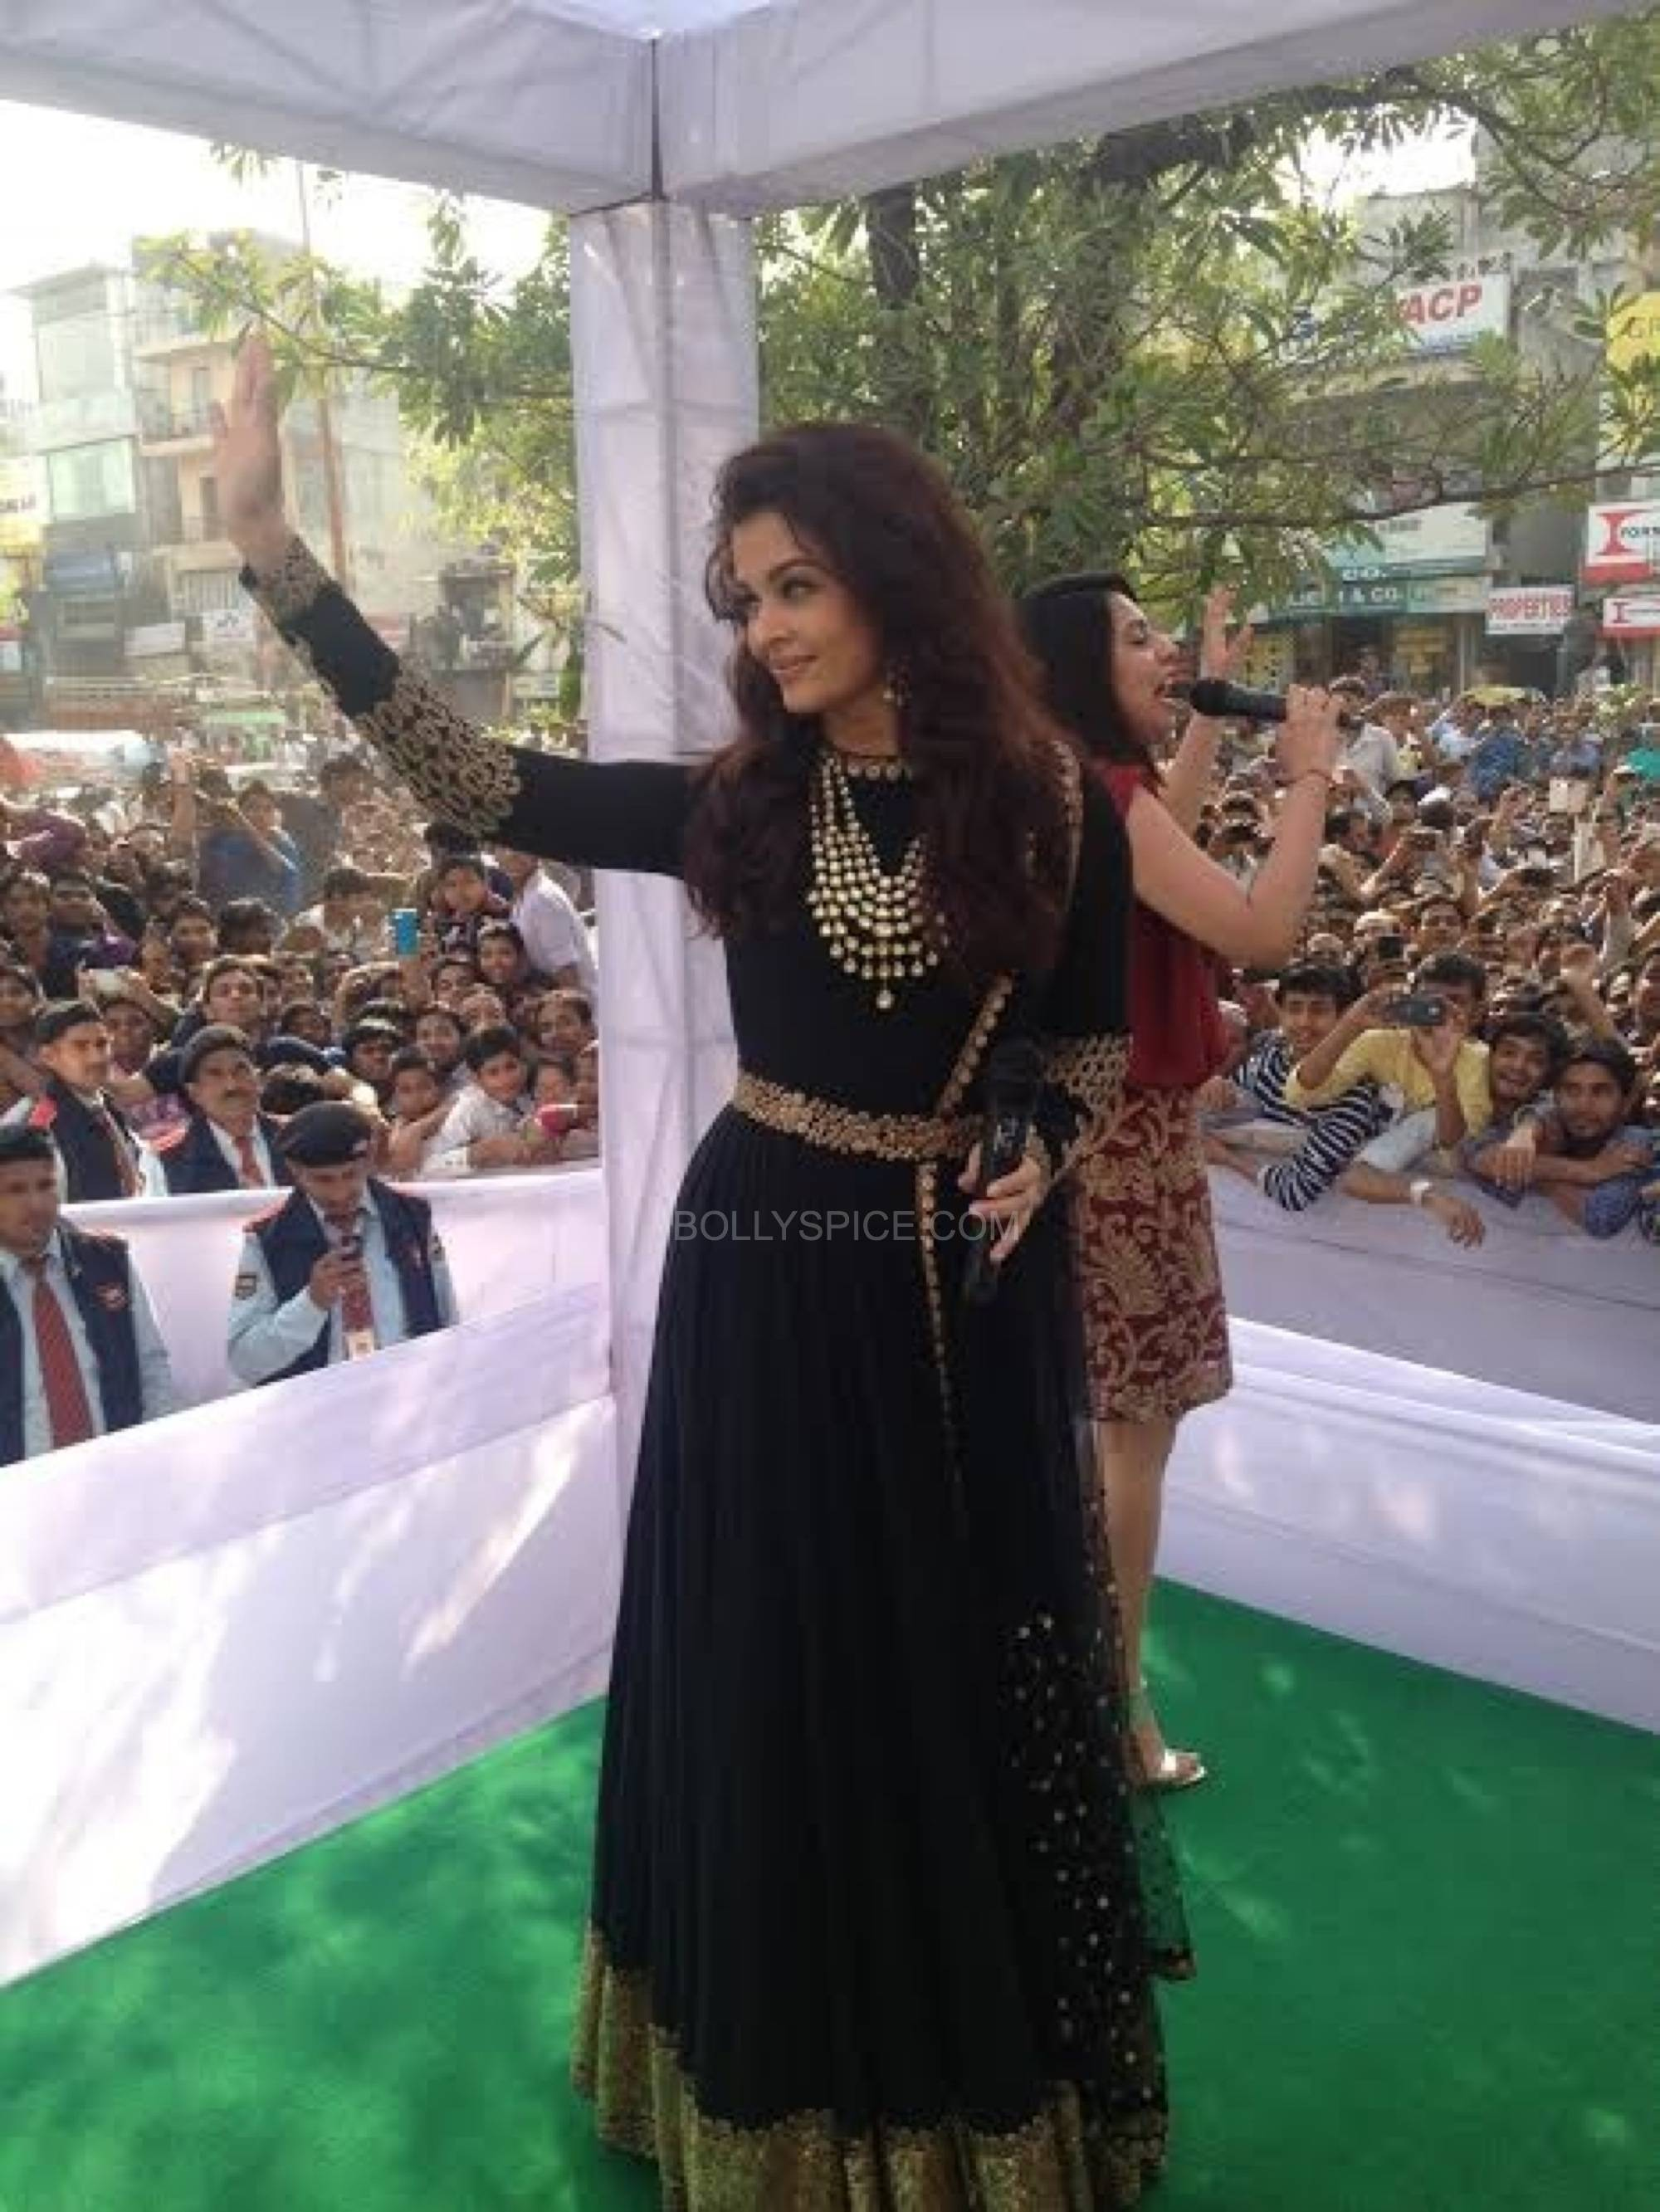 Aishwaryakalyanjewlery3 Aishwarya Rai Bachchan Looking Gorgeous for Kalyan Jewellers Launch!